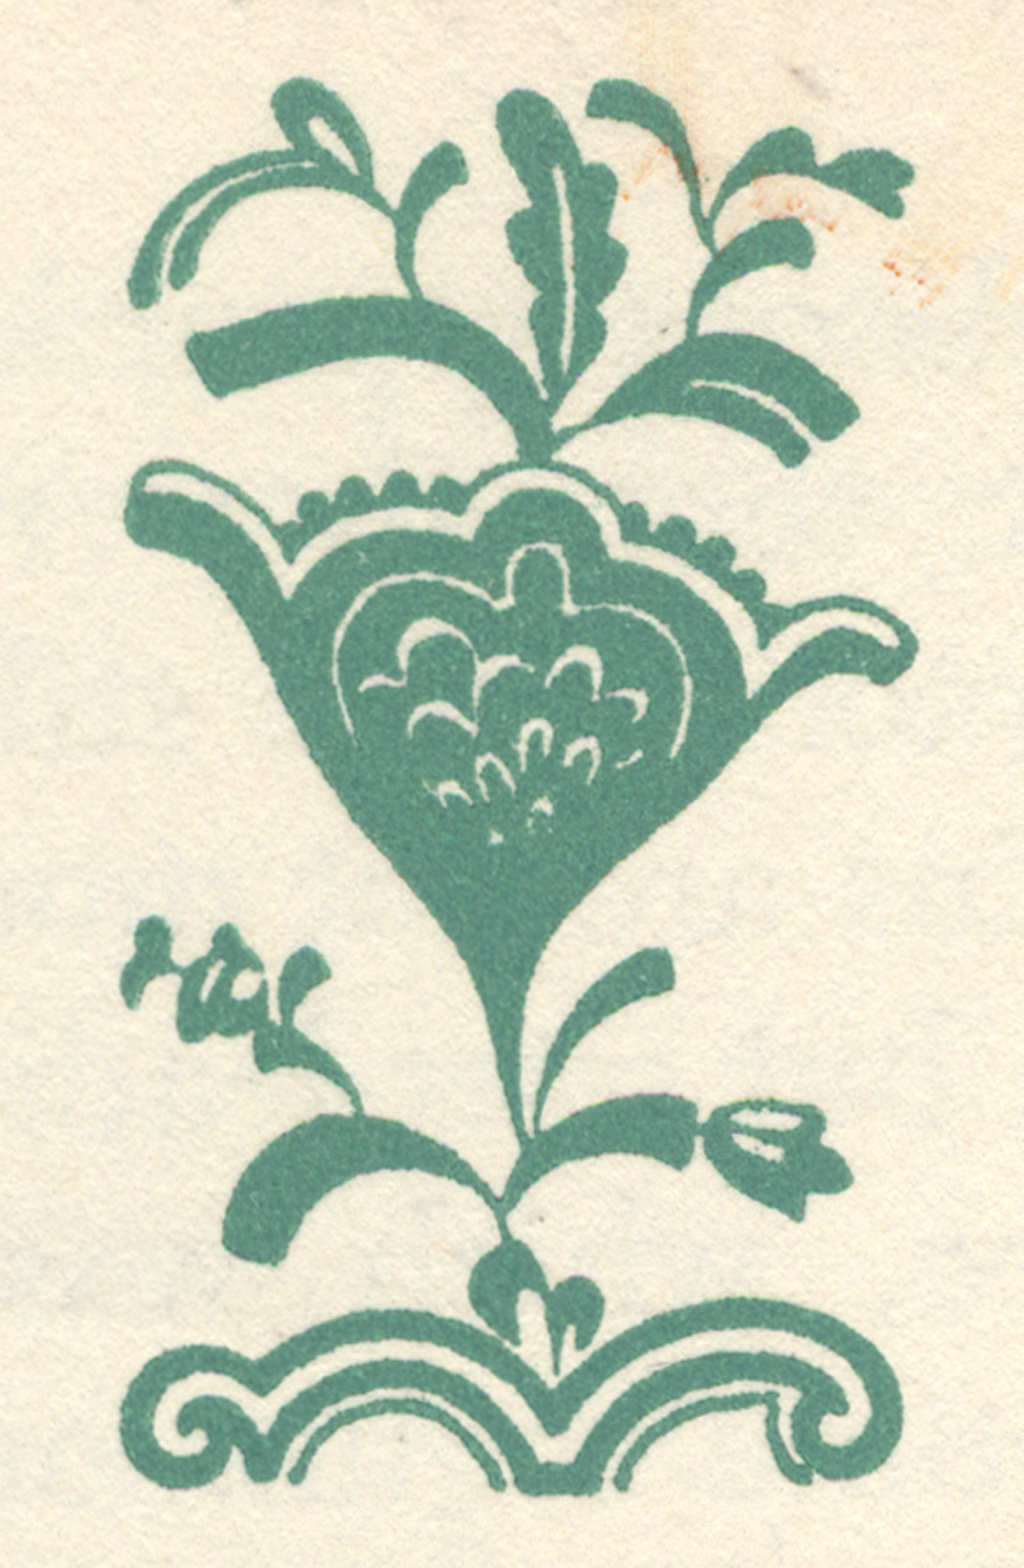 "Left ornament from ""The Court of Appeals"" title in The New Colophon vol. II, part 8 (February 1950). Design by W.A. Dwiggins."